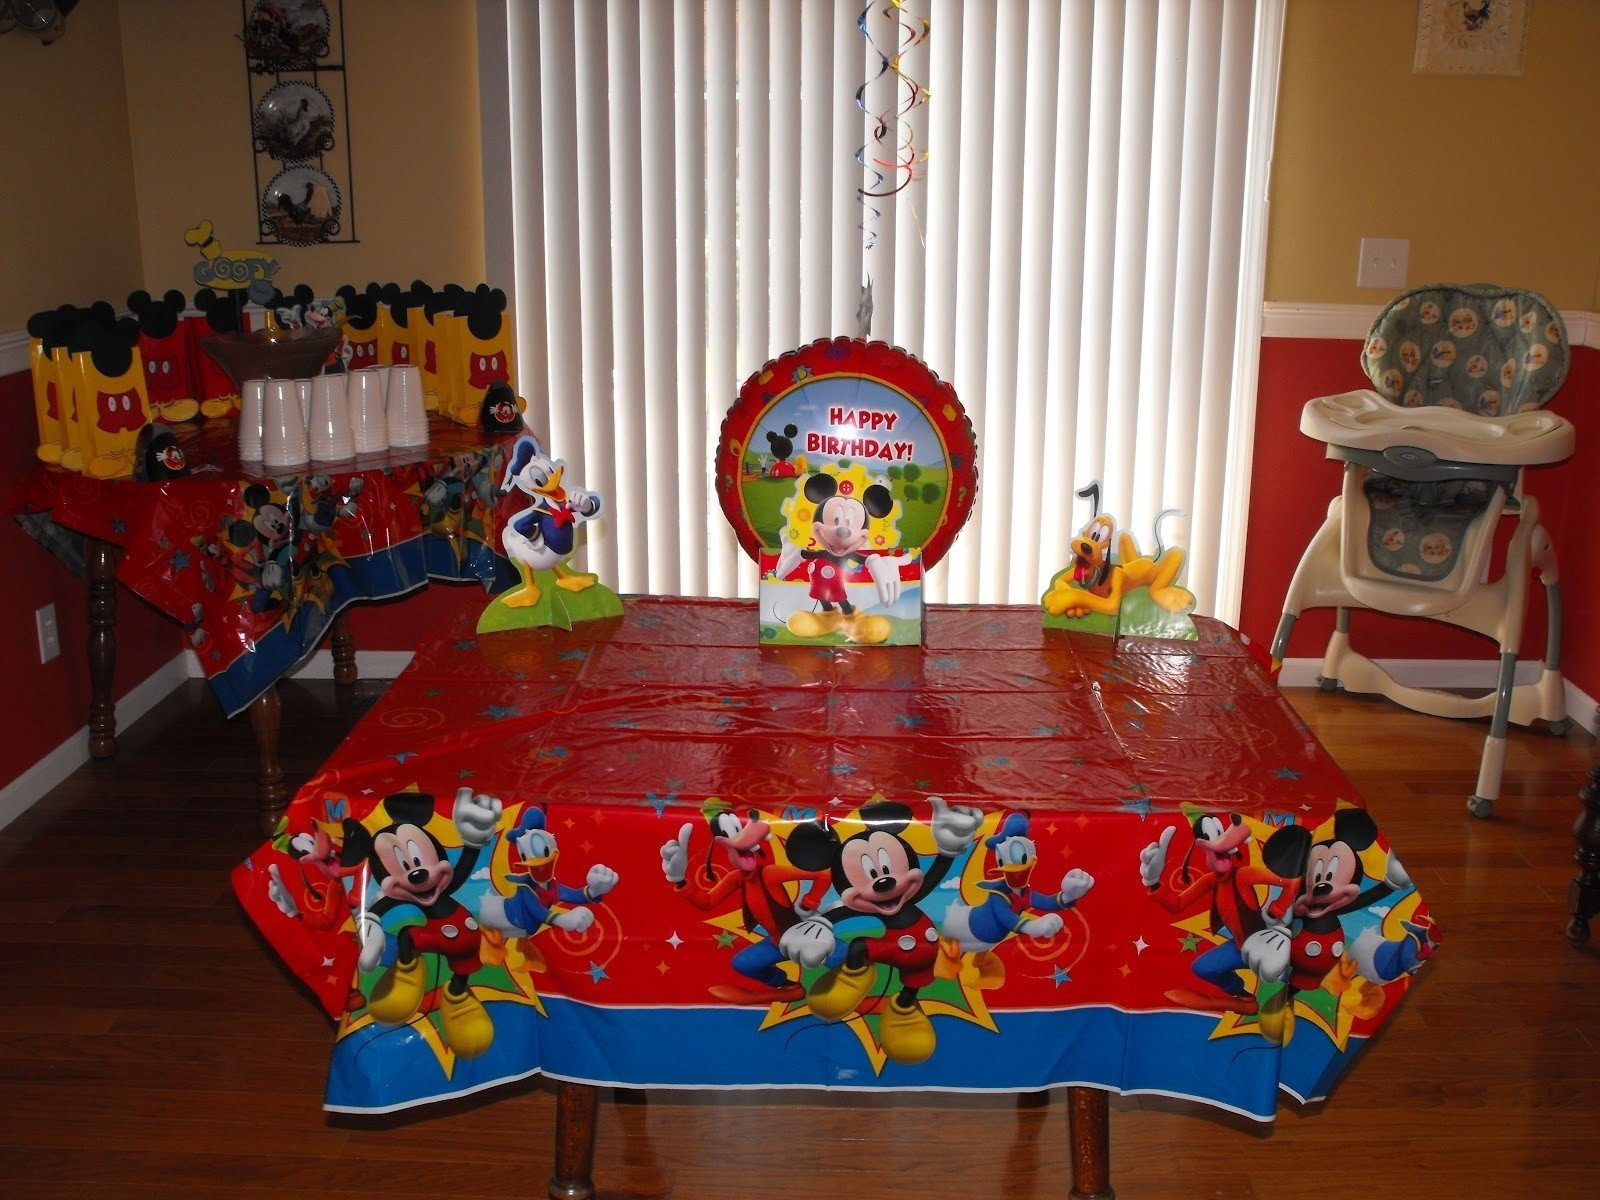 10 Beautiful Mickey Mouse Clubhouse Party Ideas 1St Birthday 27 awesome photograph over mickey mouse clubhouse party ideas 1st